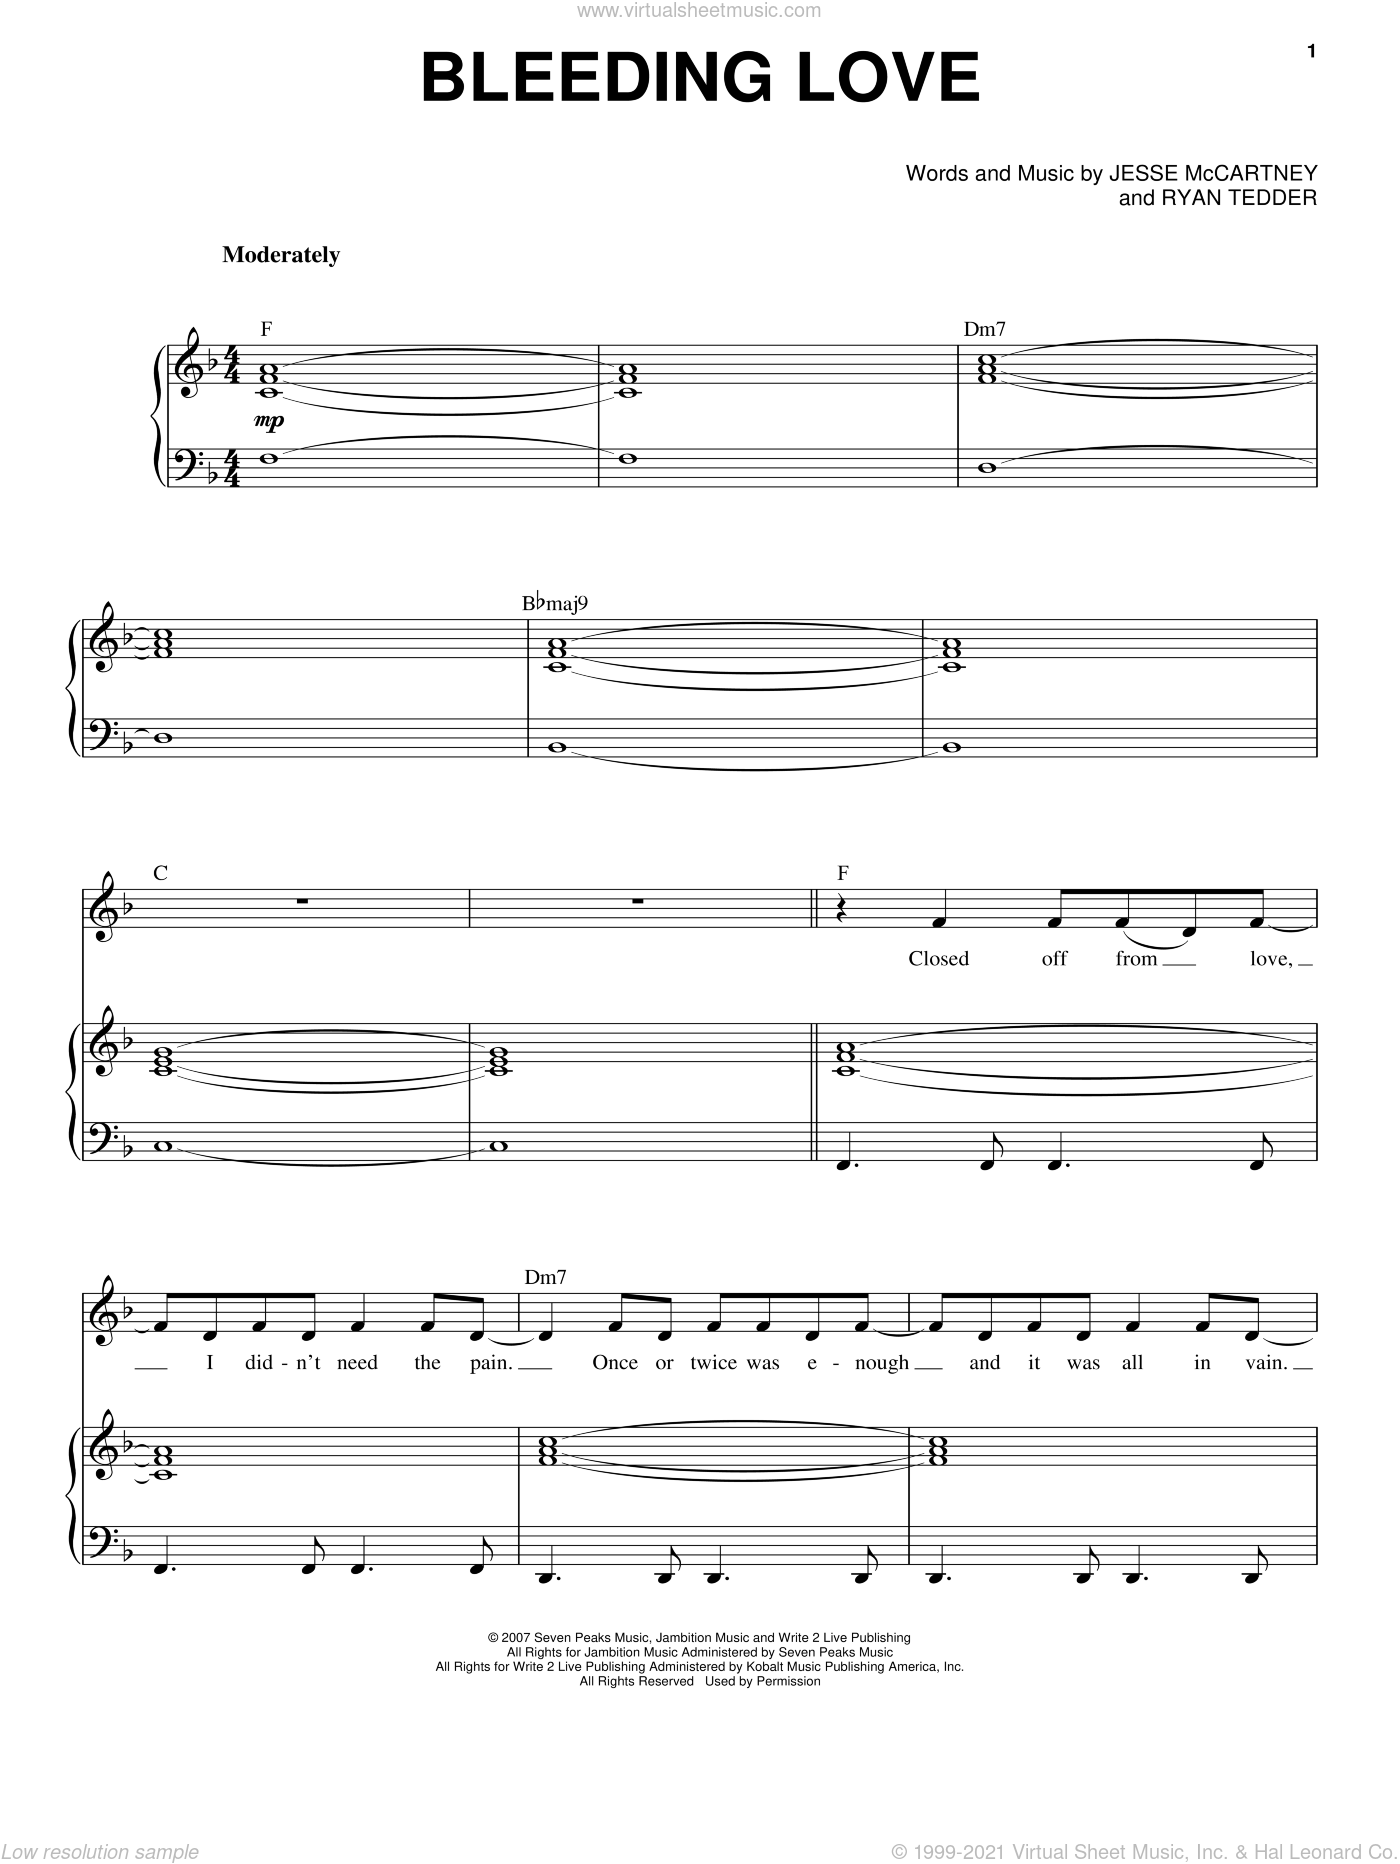 Bleeding Love sheet music for voice and piano by Ryan Tedder